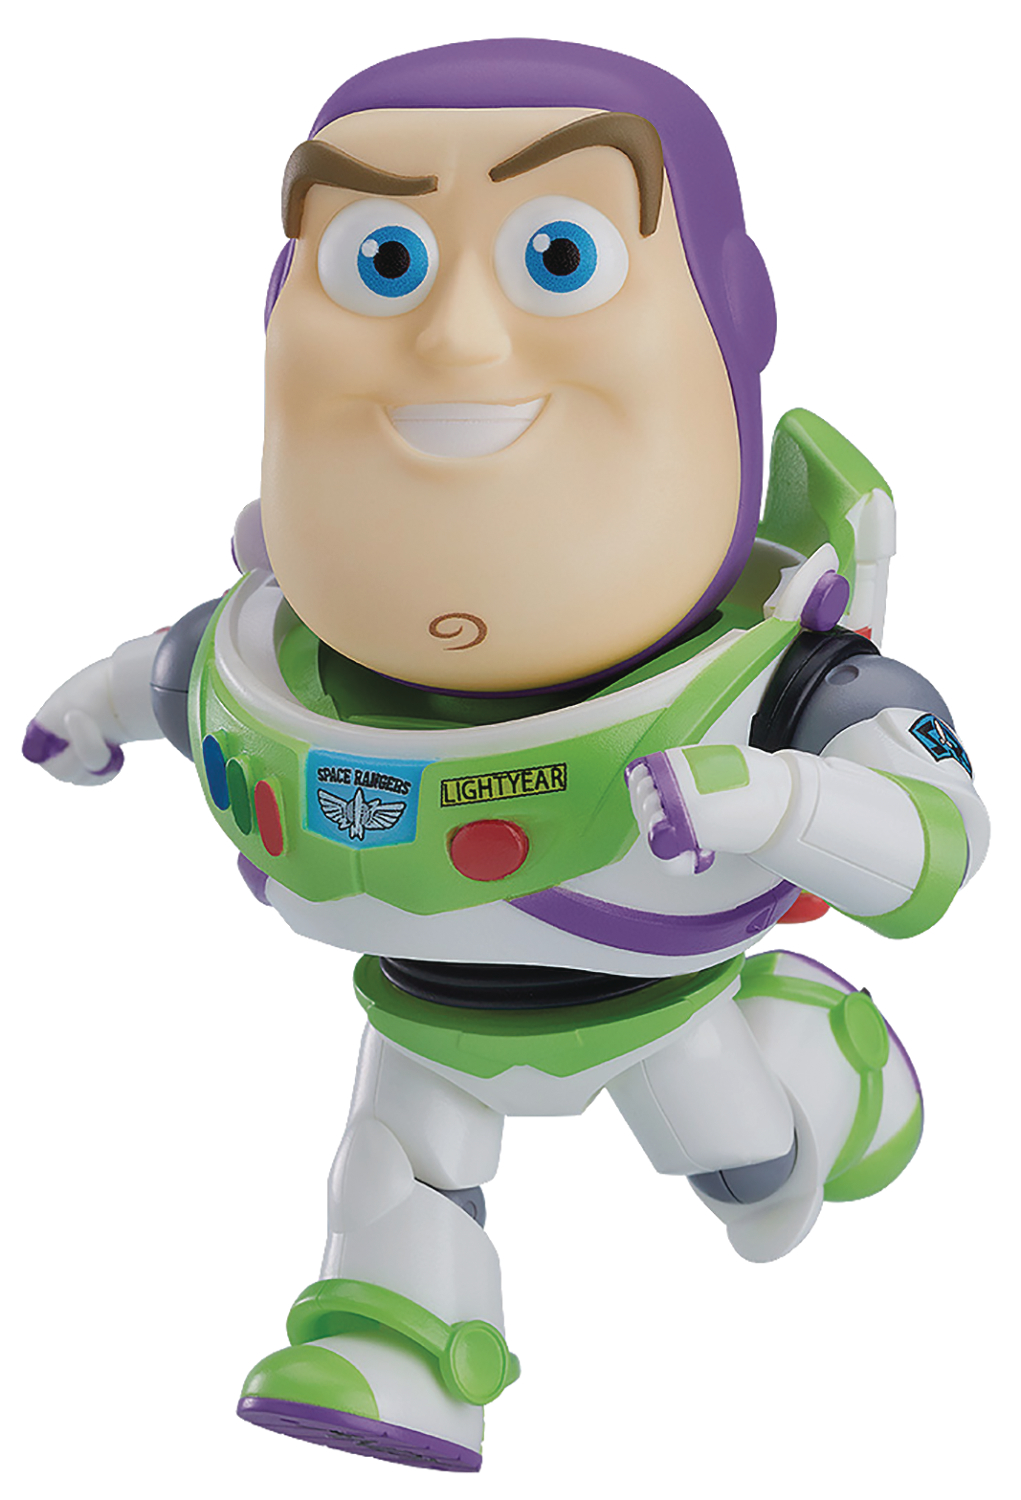 TOY STORY BUZZ LIGHTYEAR NENDOROID AF DLX VER